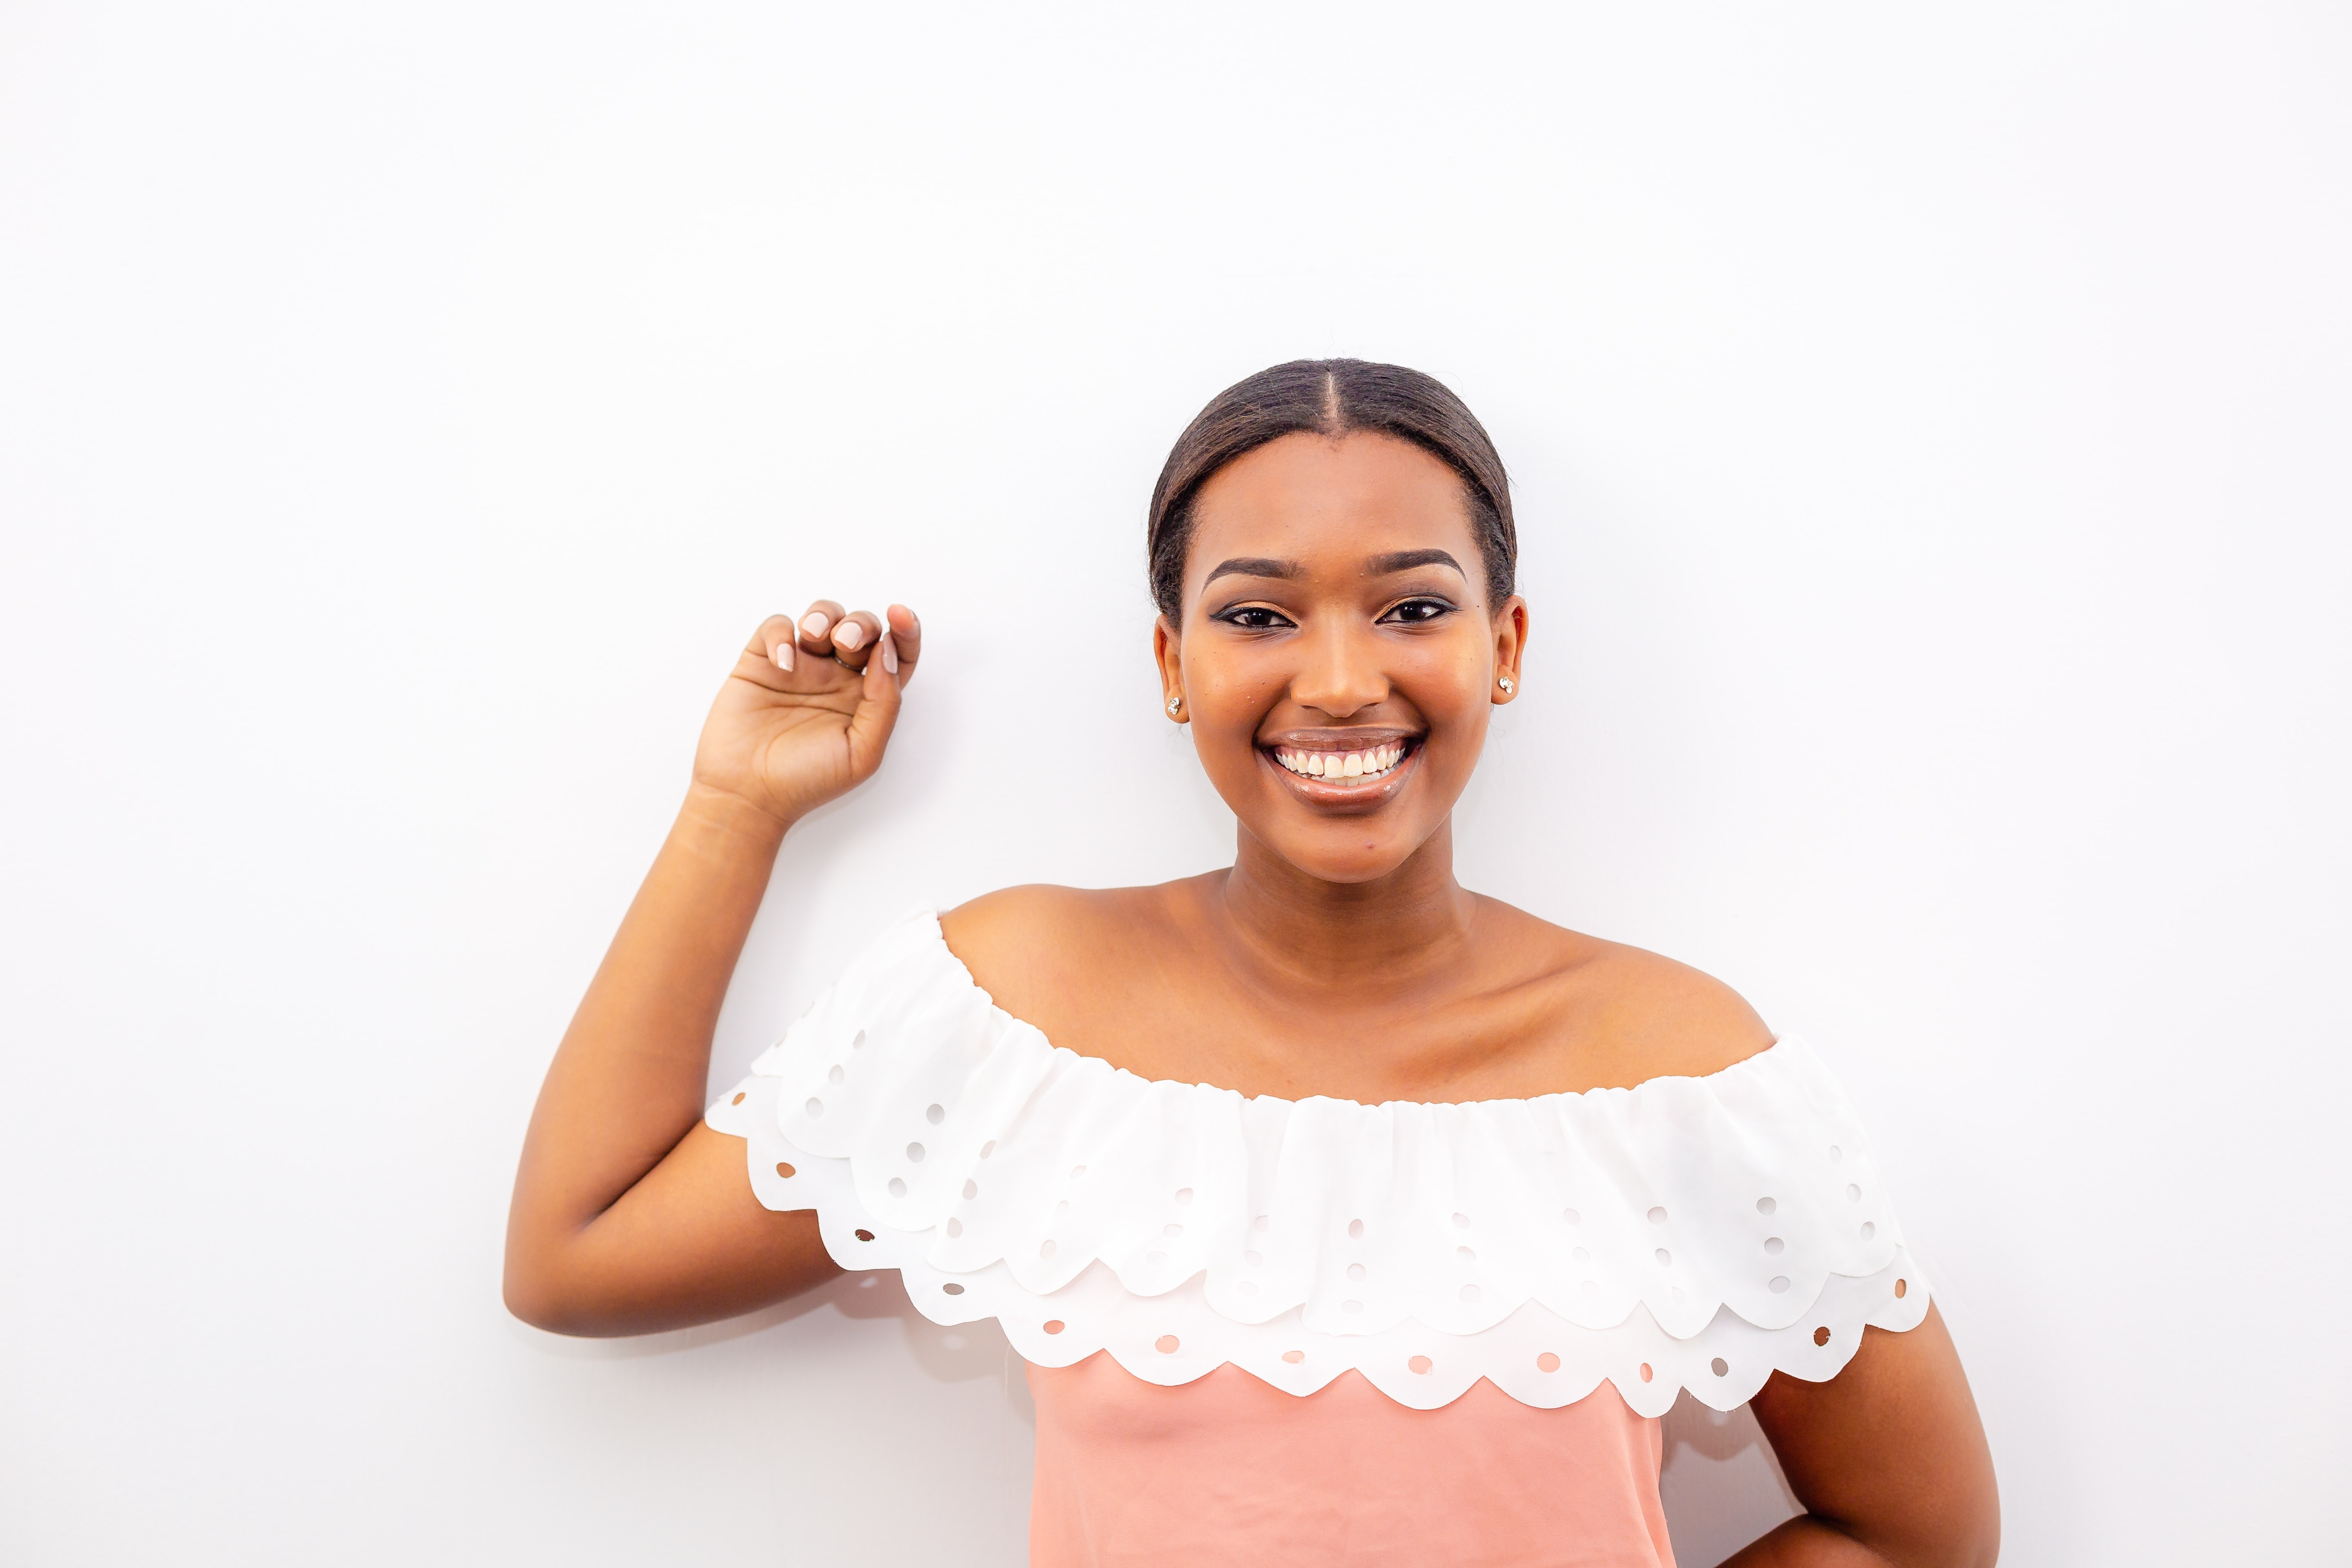 woman in white and pink off-shoulder top standing beside wall